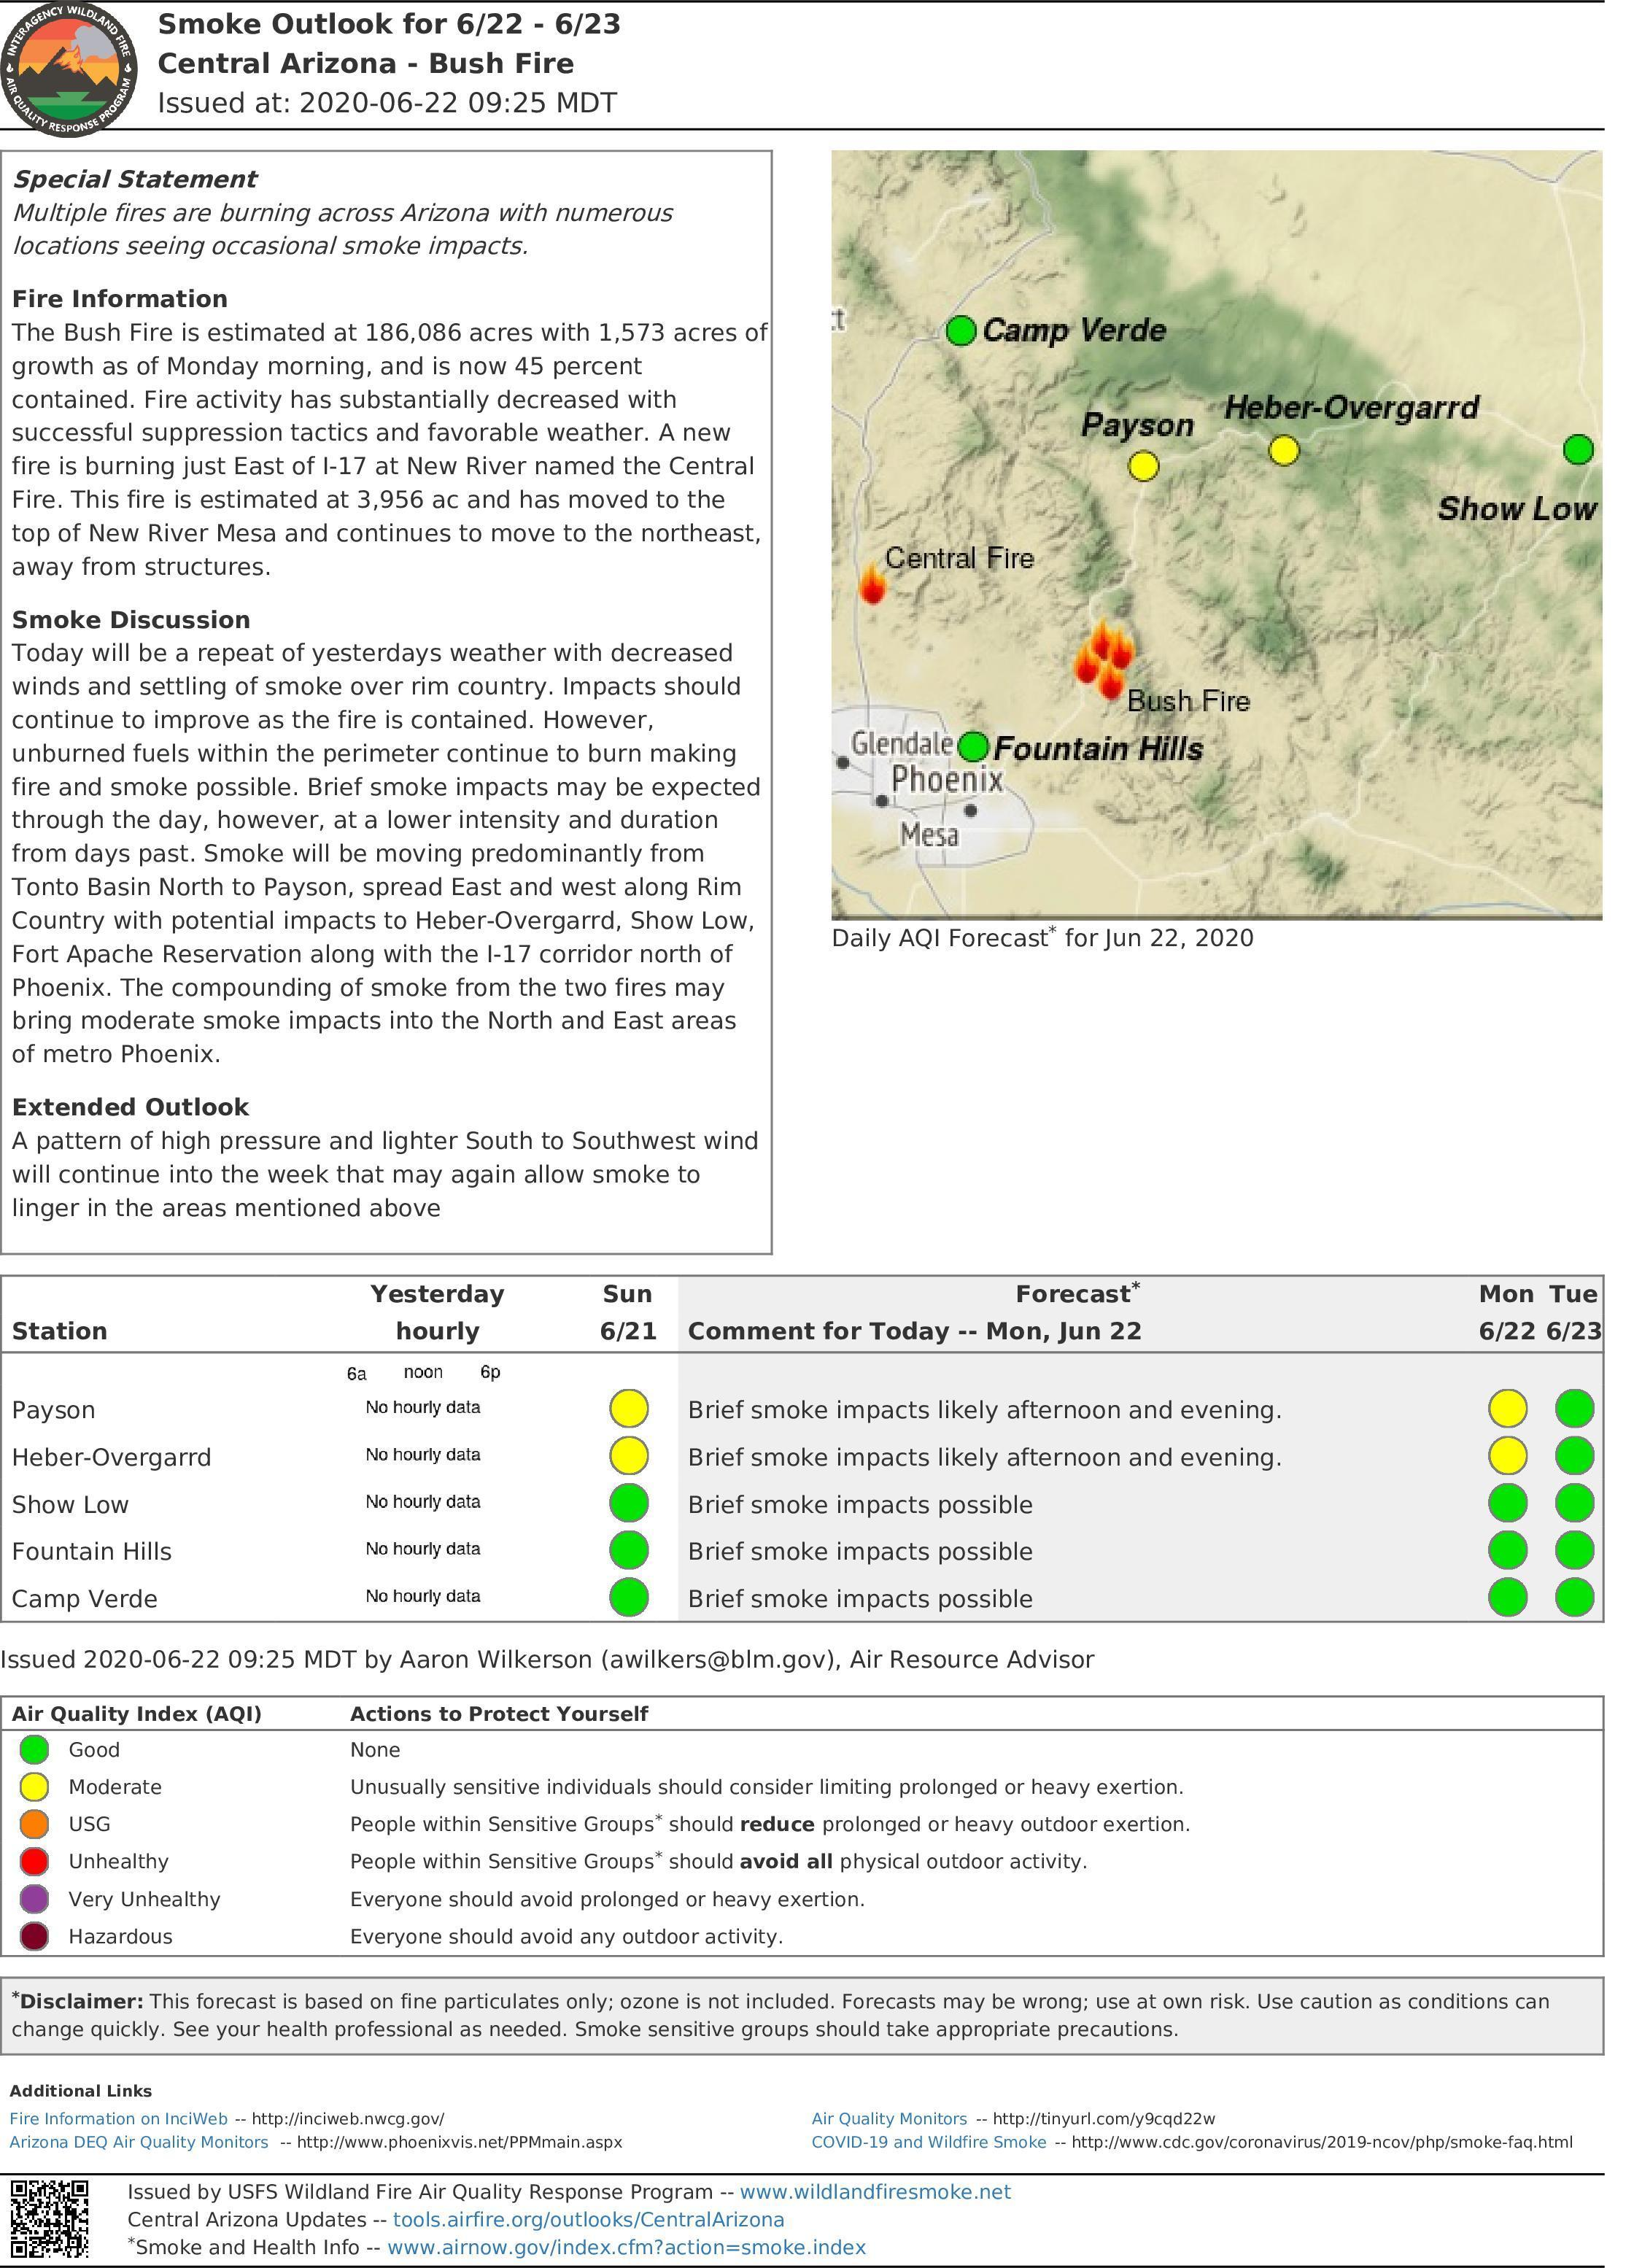 Smoke Report for the Bush and Central Fires for June 22-23. A pdf of this document is downloadable